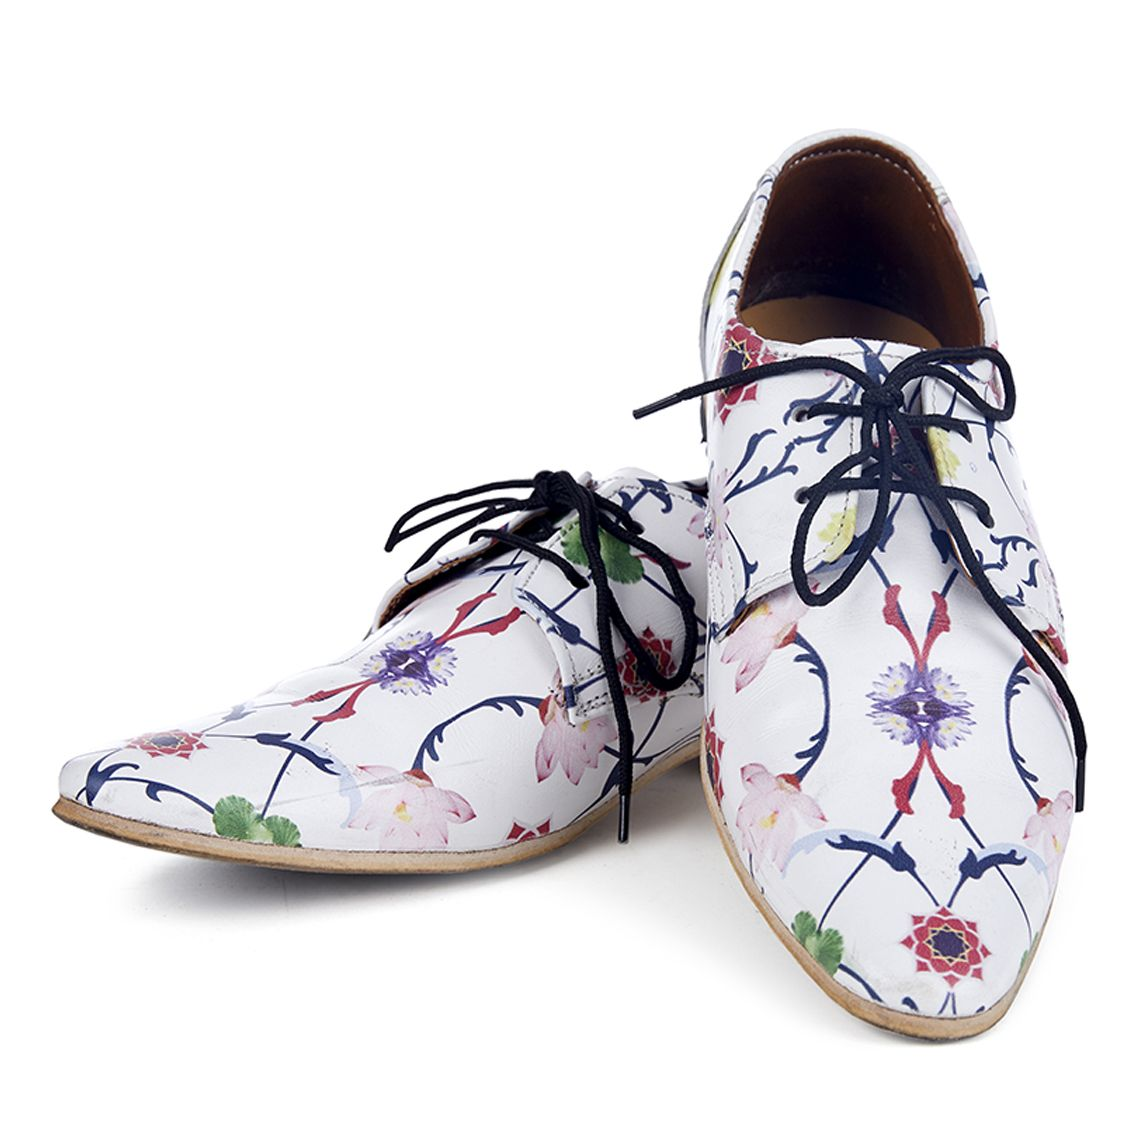 Komol Lotus Handmade Printed Shoes